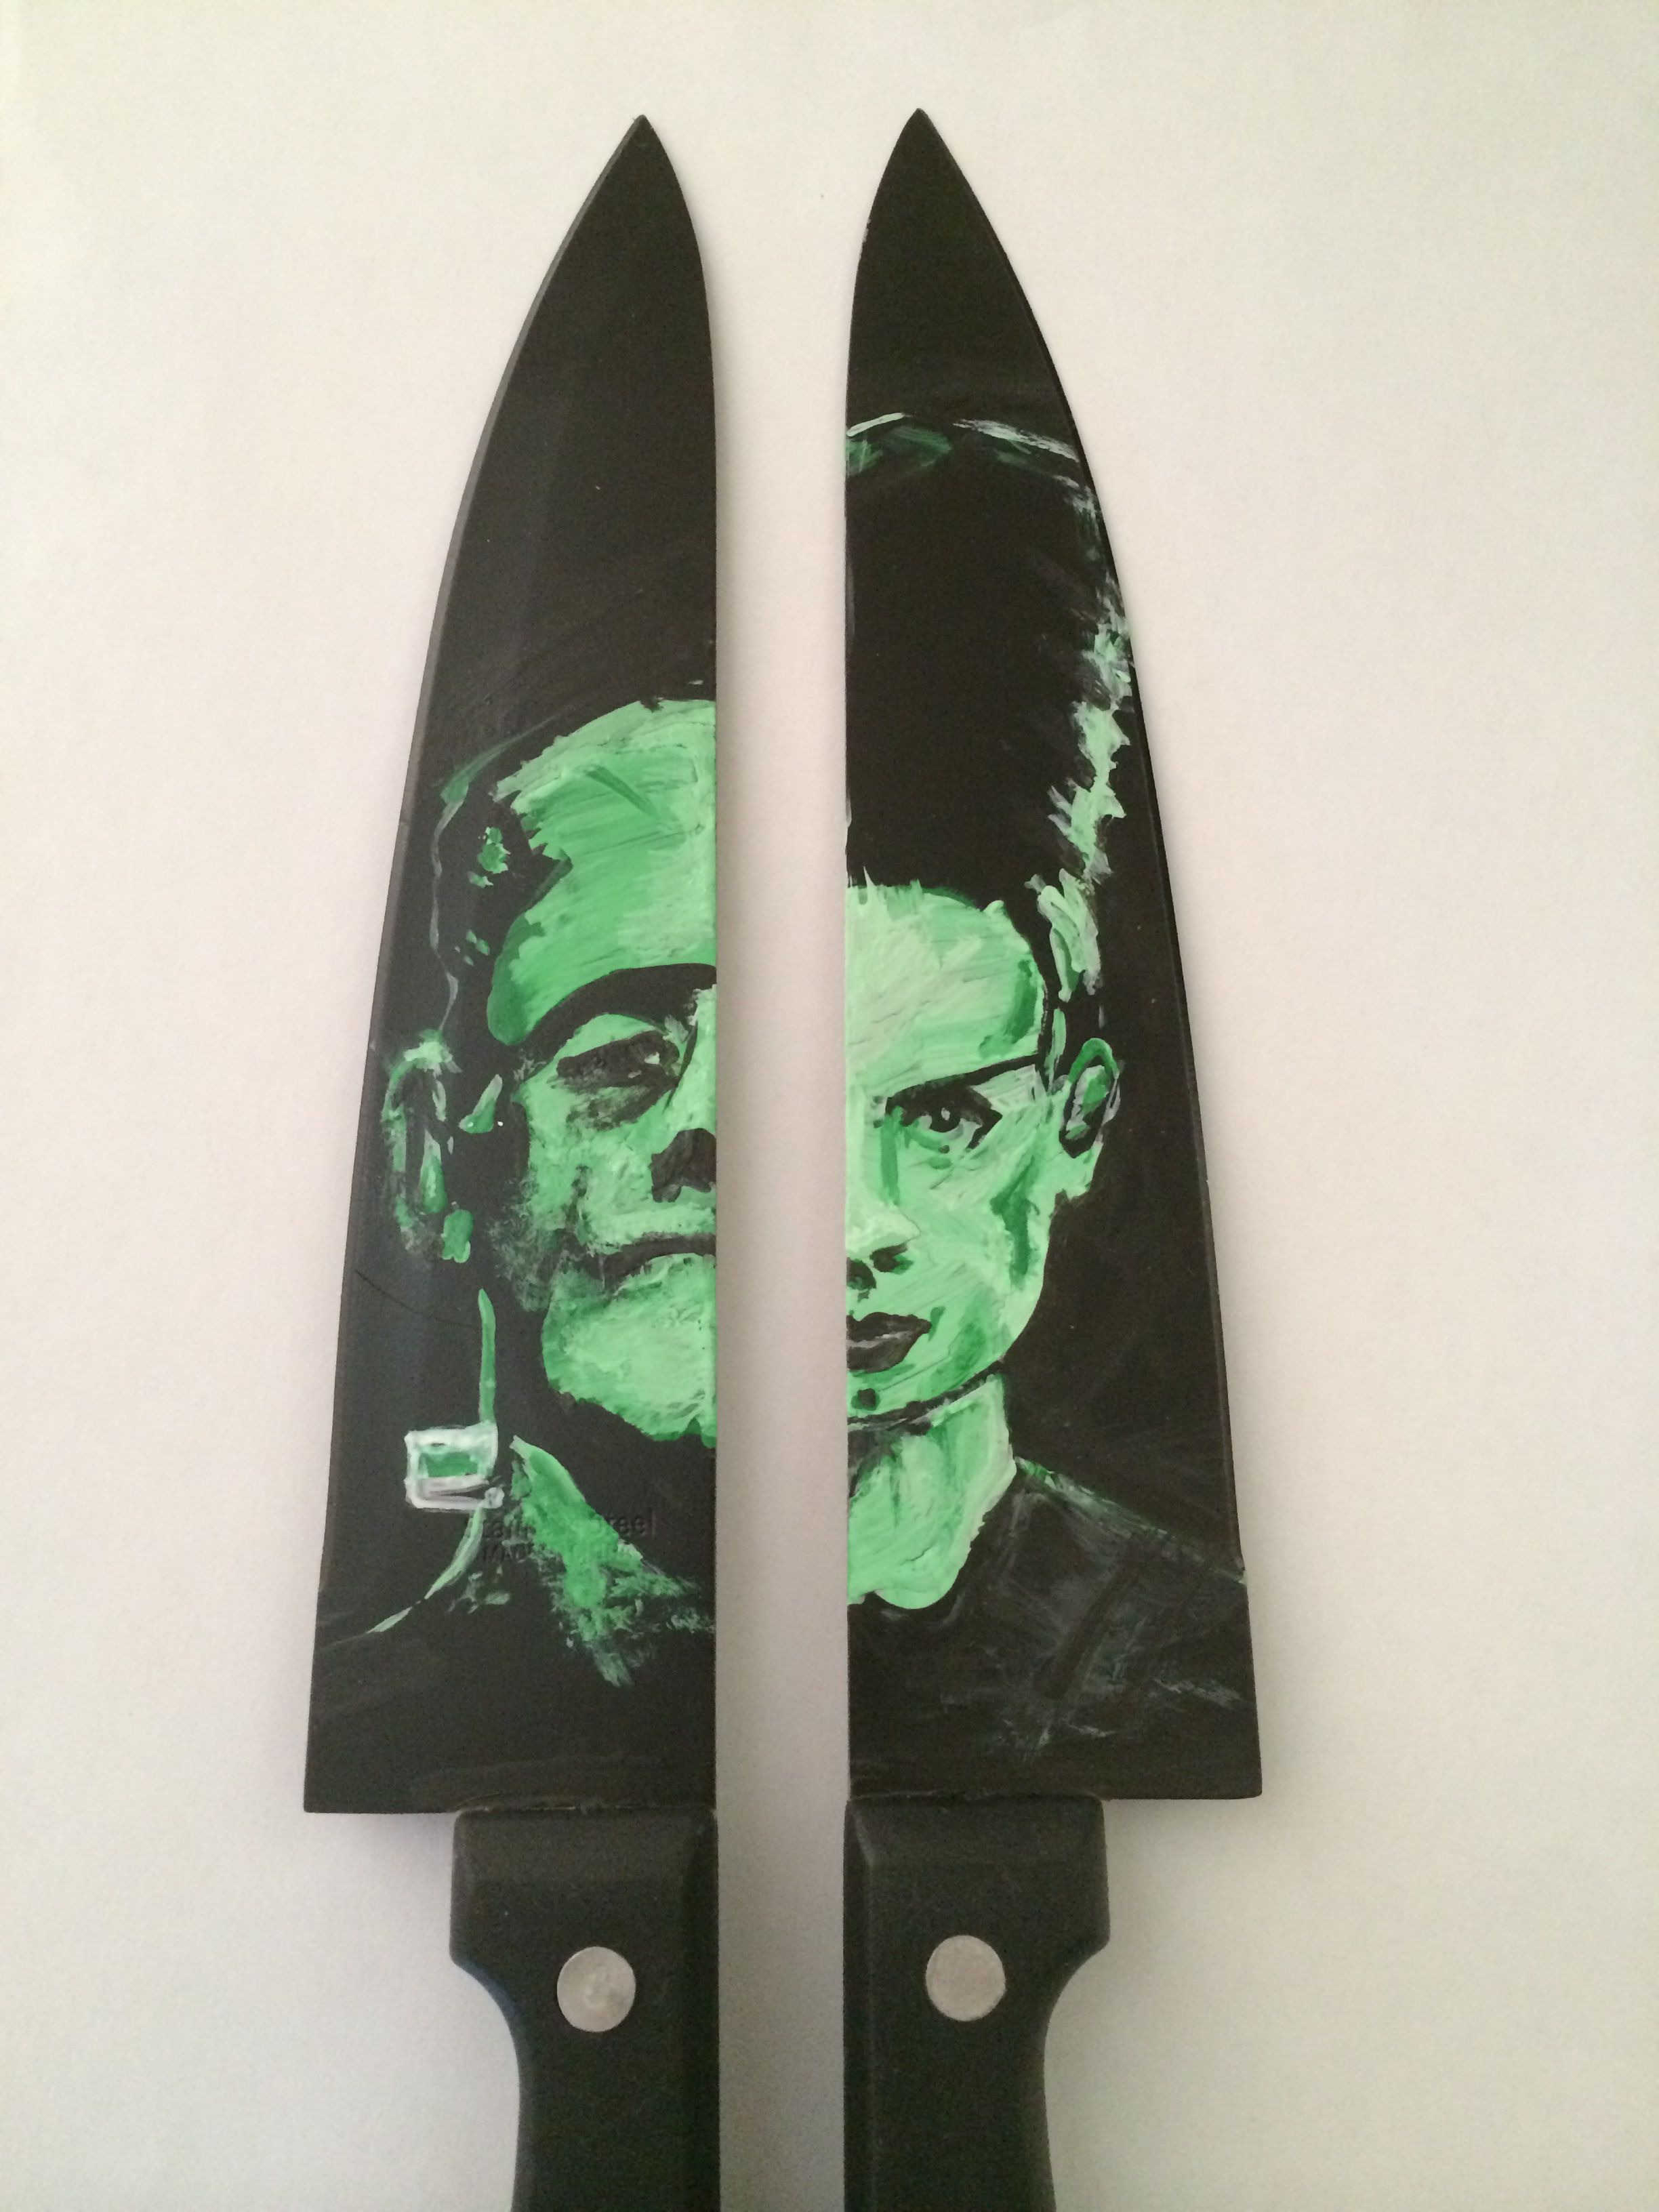 The fearful frankenstein